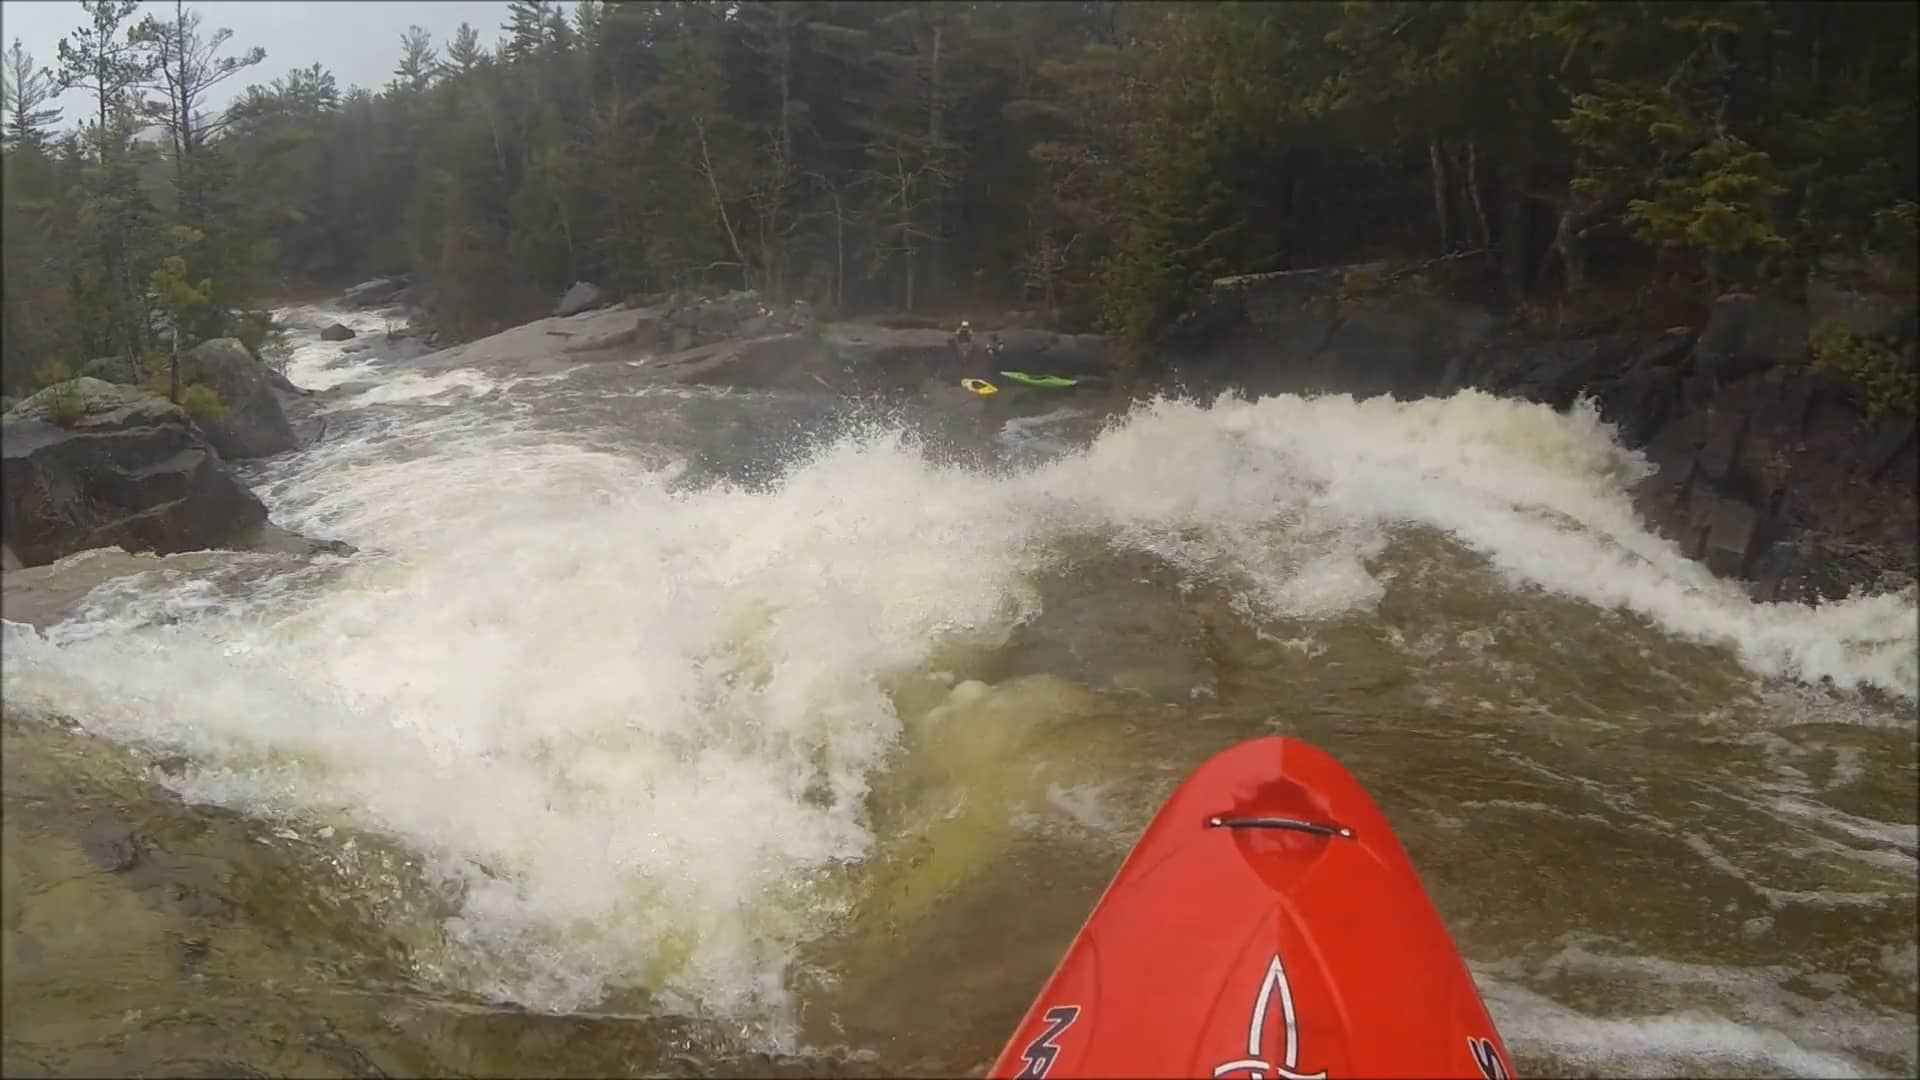 Maine Kayaker Killed In Whitewater Incident NORTHEAST EXPLORER